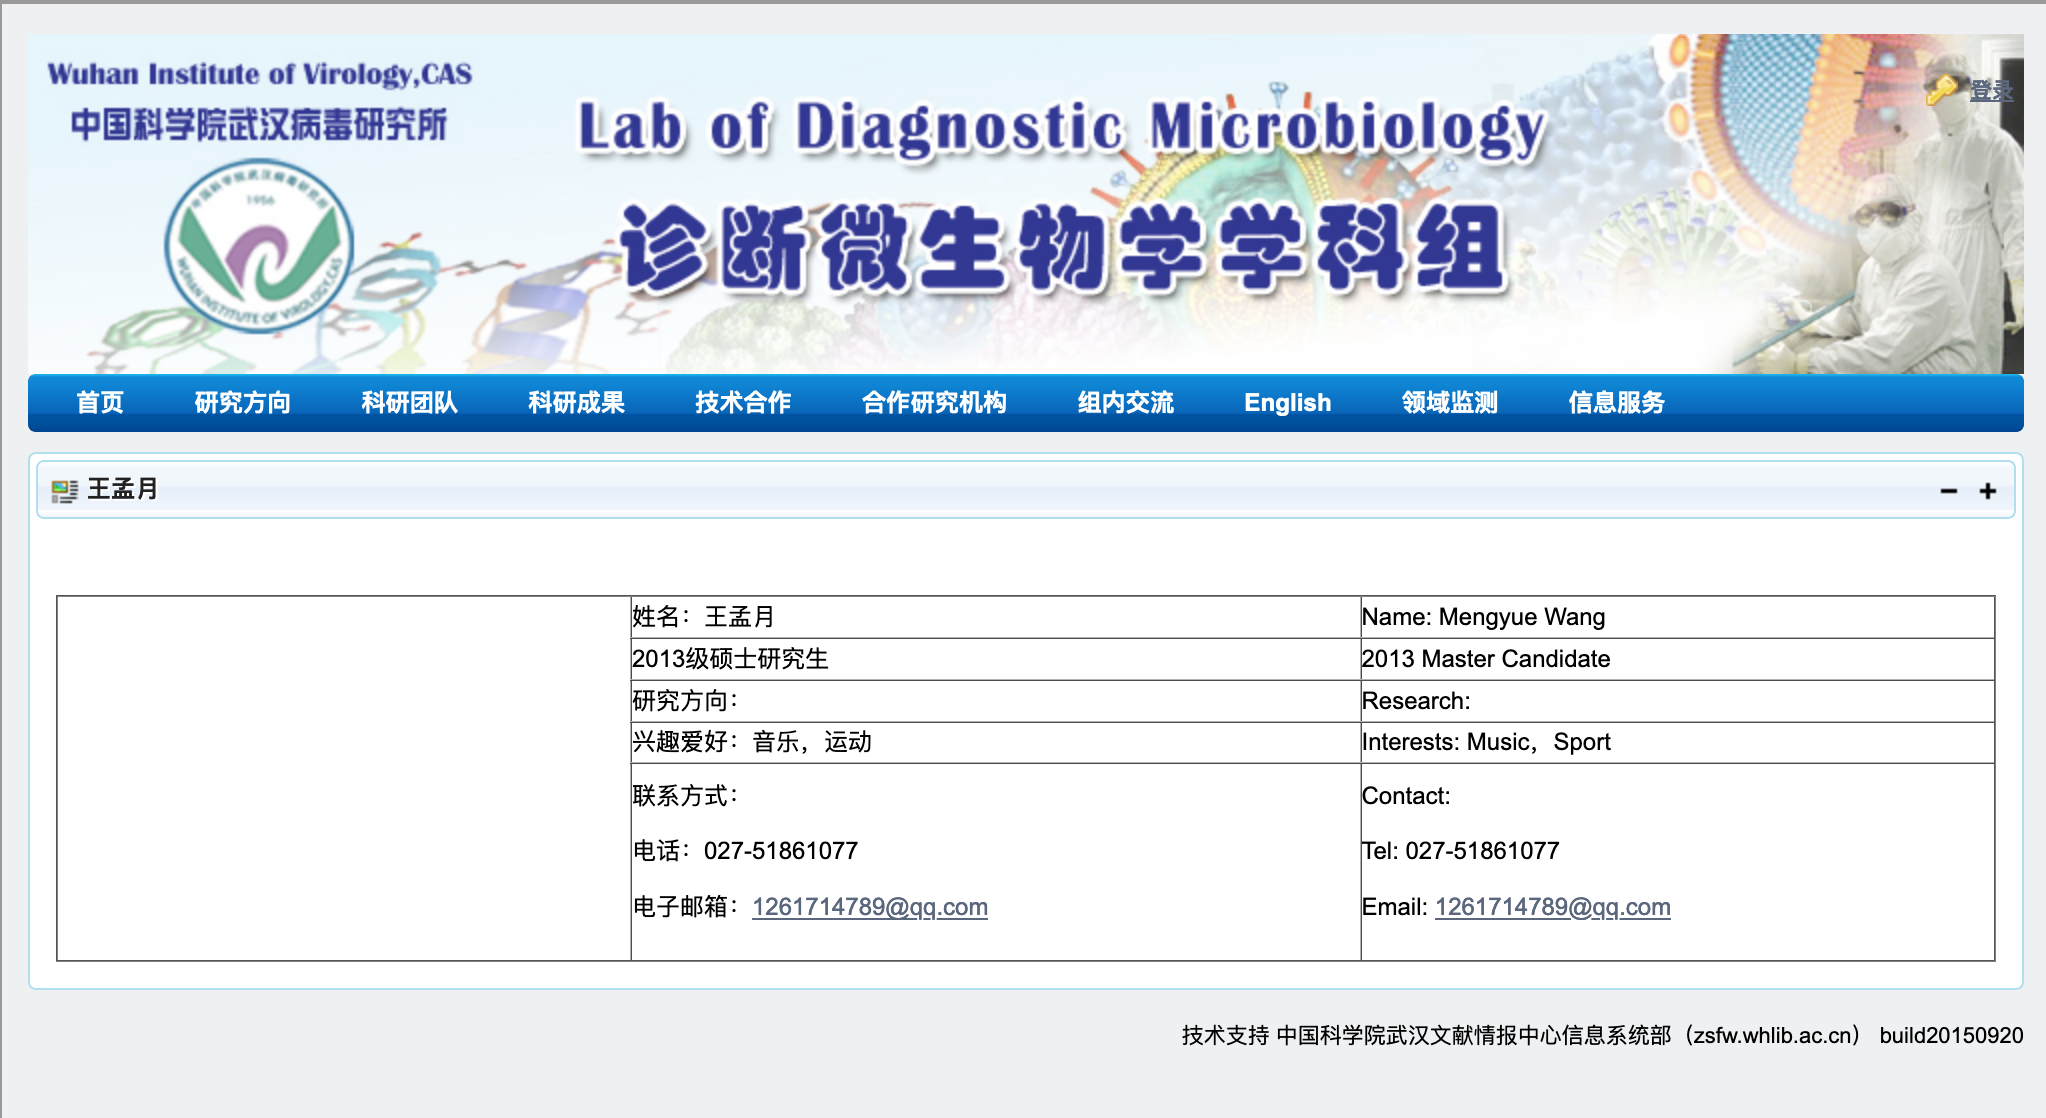 yanling 3 Evidence SARS-CoV-2 Emerged From a Biological Laboratory in Wuhan, China